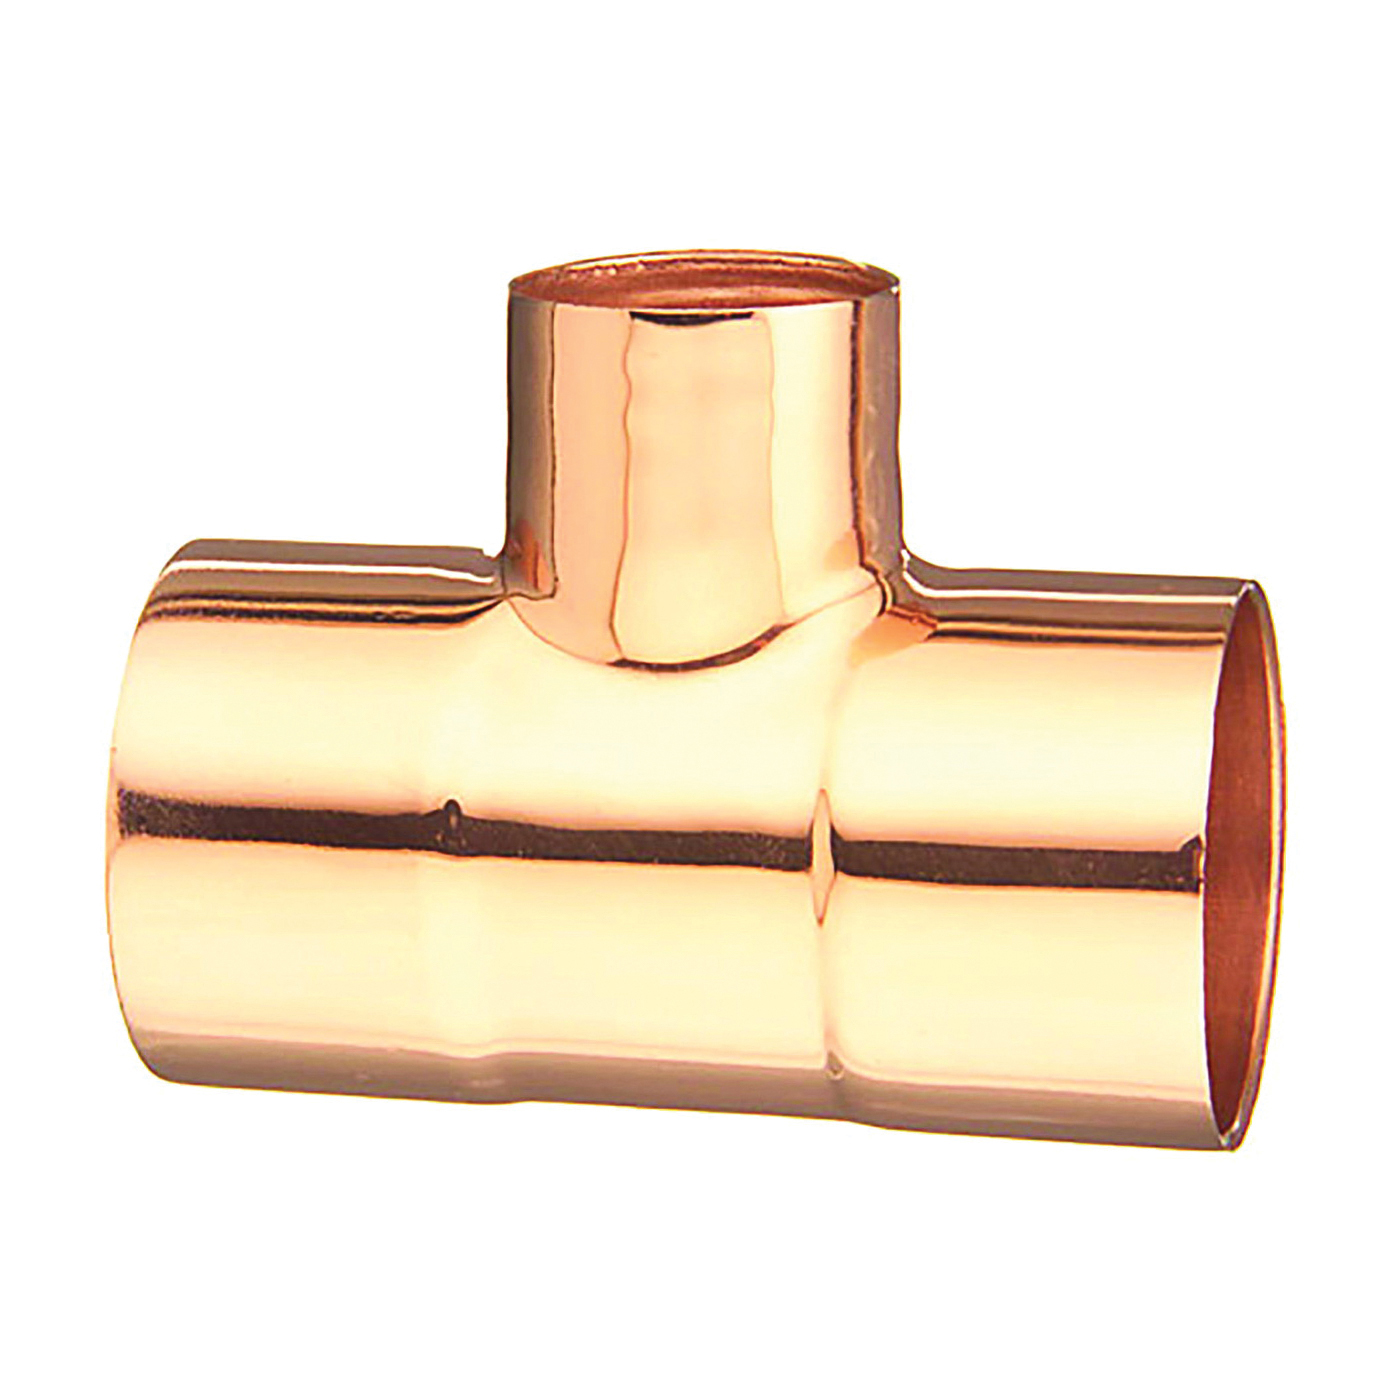 Picture of EPC 111R 32774 Pipe Reducing Tee, 3/4 x 3/4 x 1/2 in, Sweat, Copper